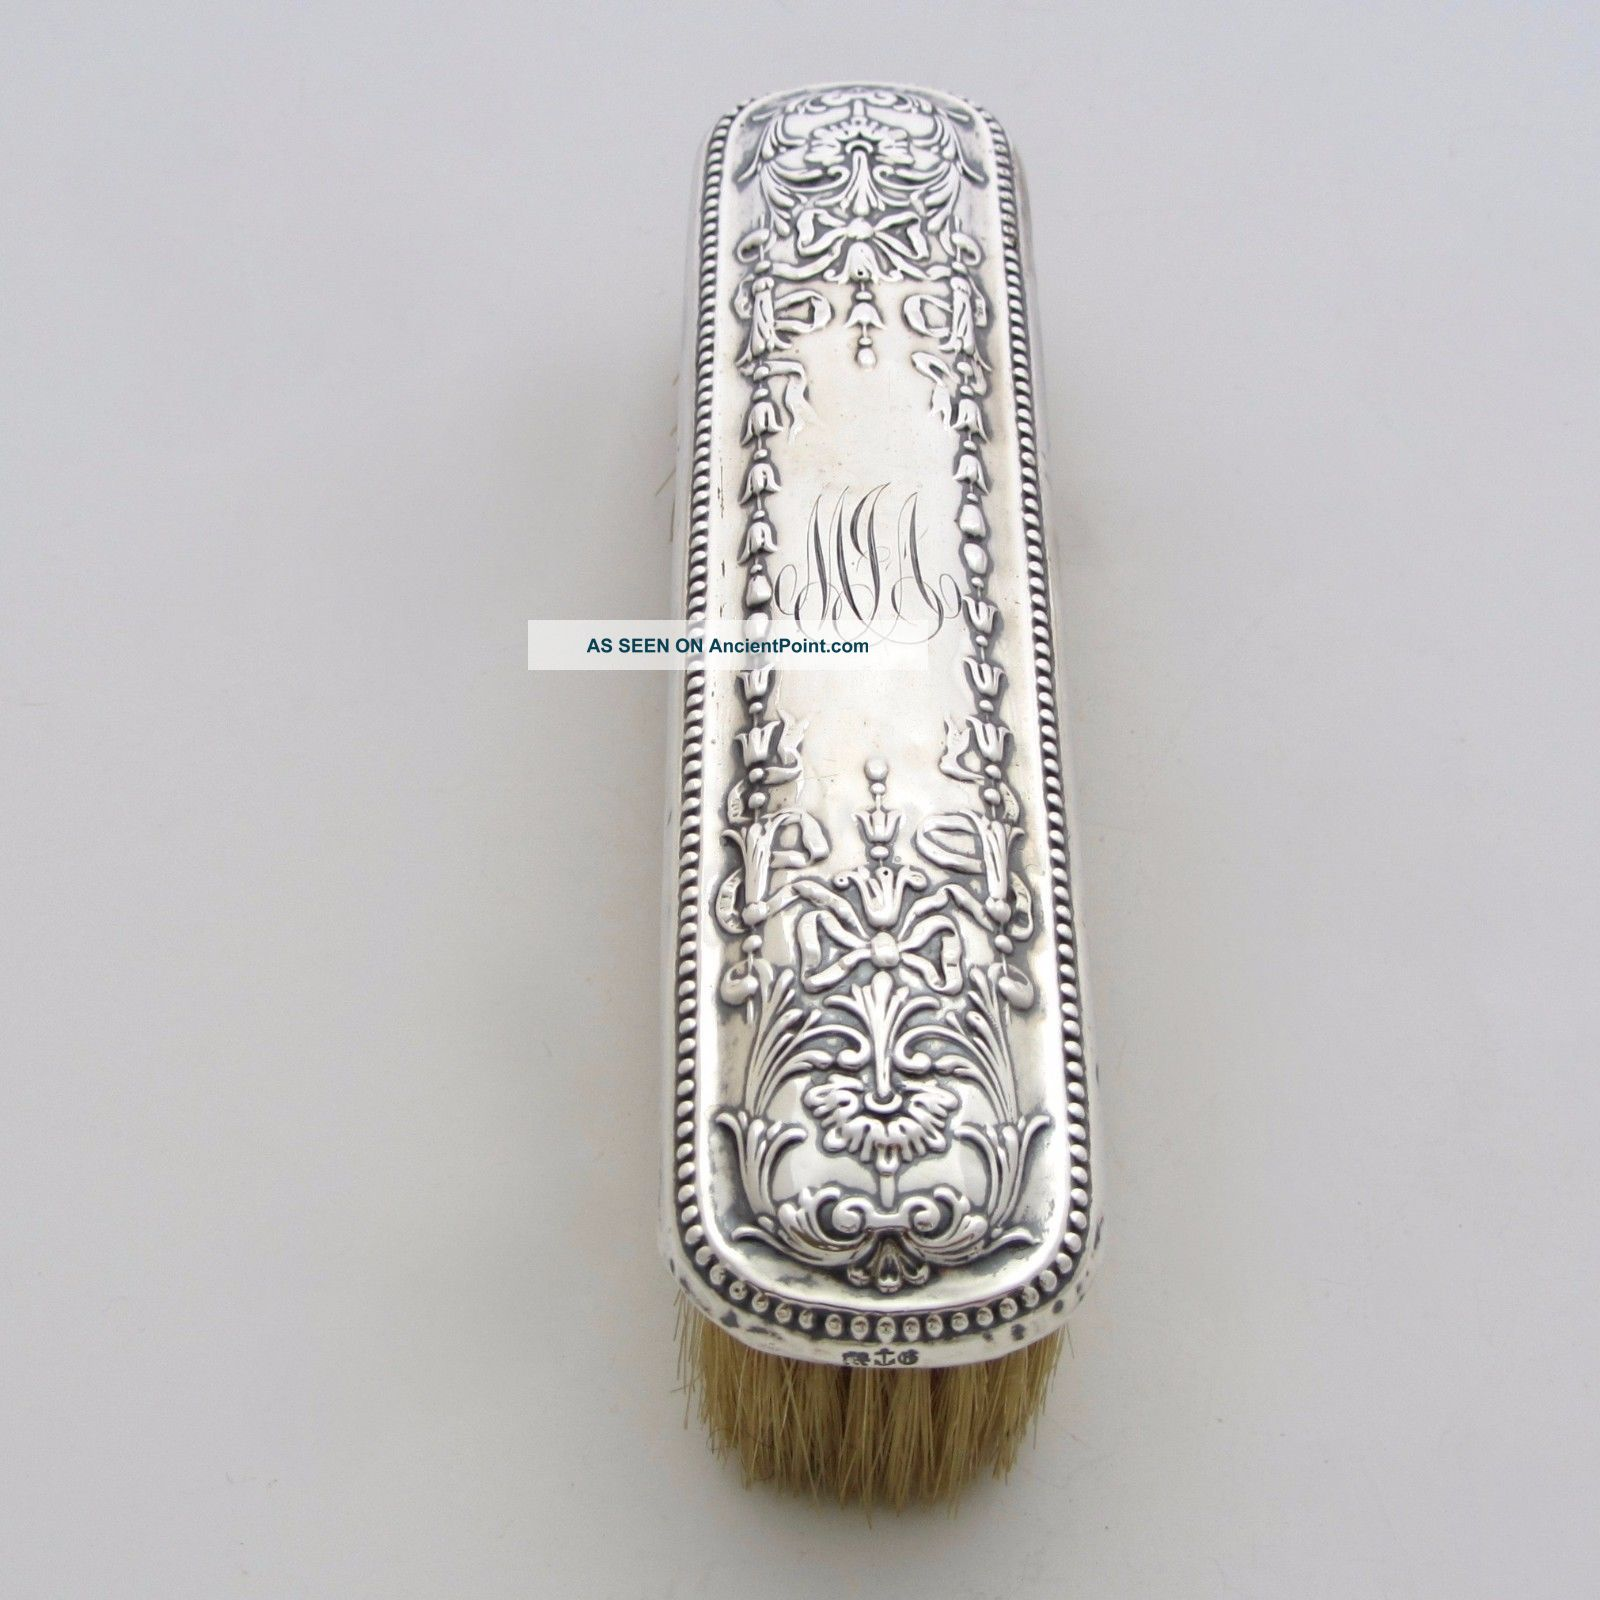 Antique Gorham Sterling Silver Clothes Brush Repousse 1890s Brushes & Grooming Sets photo